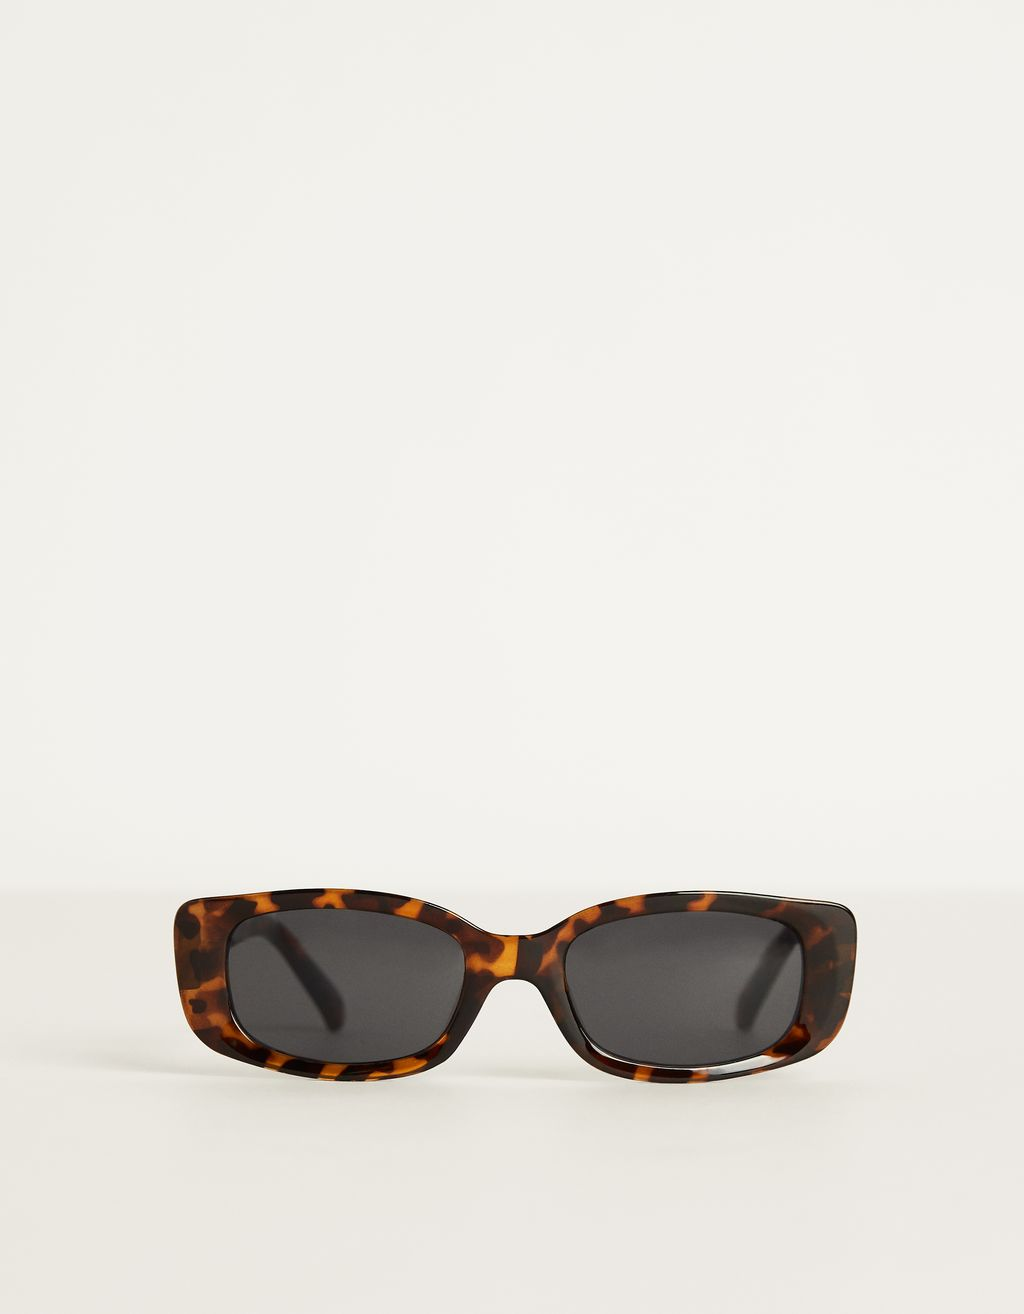 Tortoiseshell rectangular sunglasses